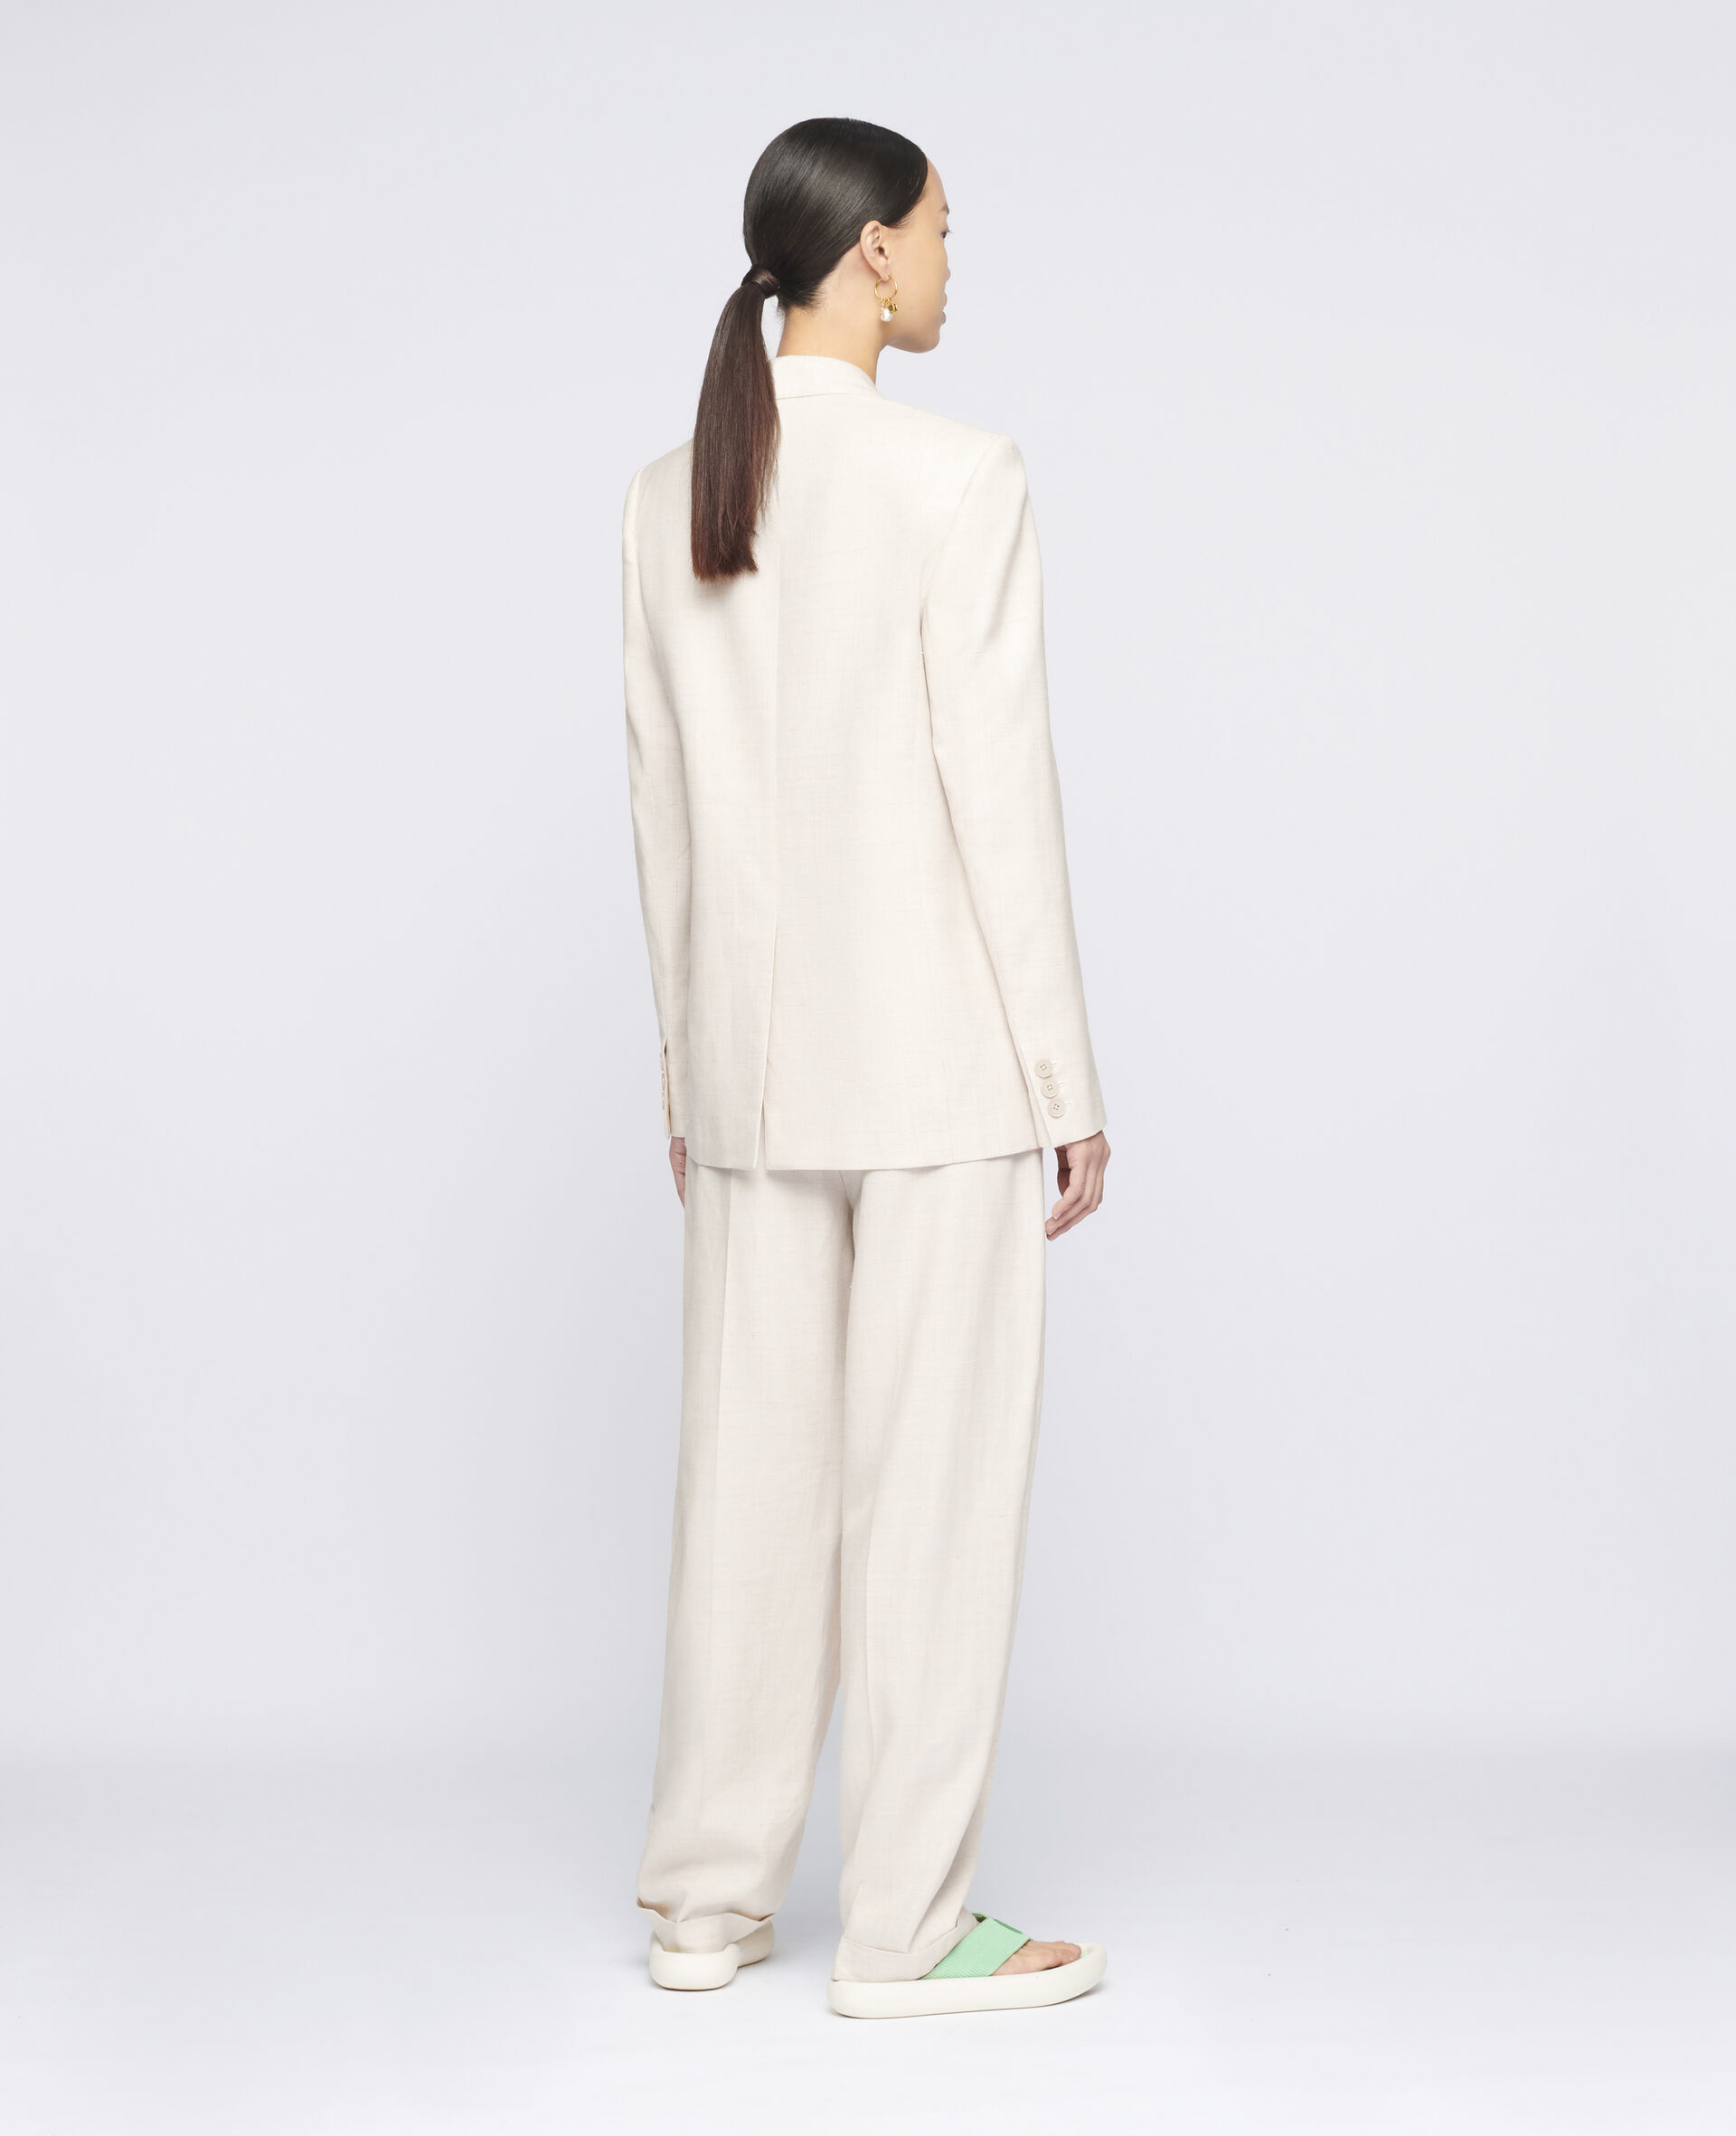 Couture-Hose Ariana-Beige-large image number 2